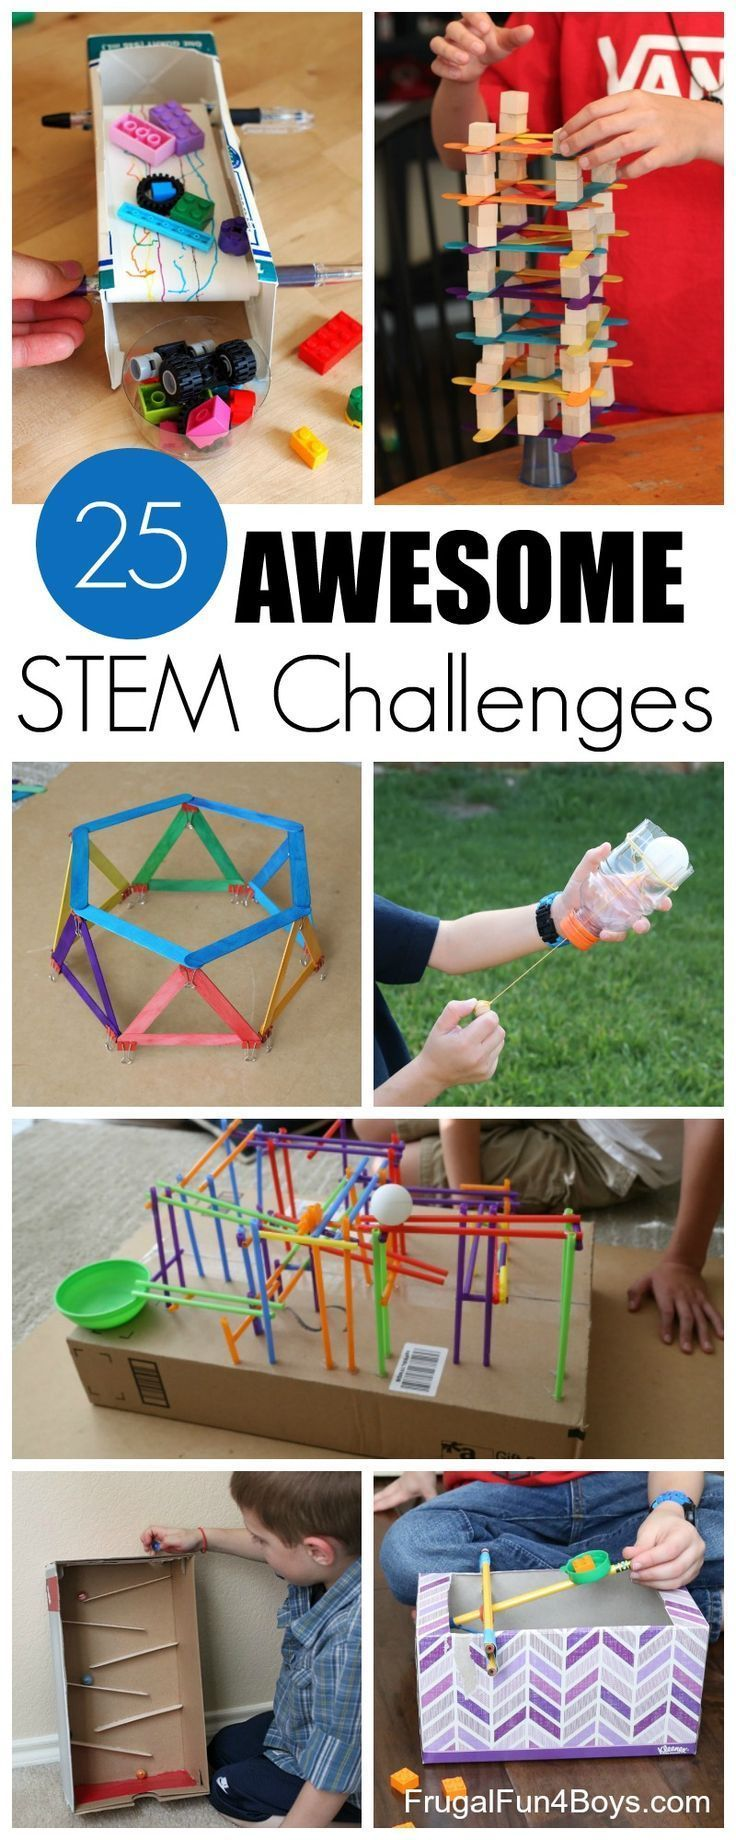 1591 best classroom teacher images on pinterest school science 25 awesome stem challenges for kids with inexpensive or recycled materials straw craftsrecycled thecheapjerseys Gallery